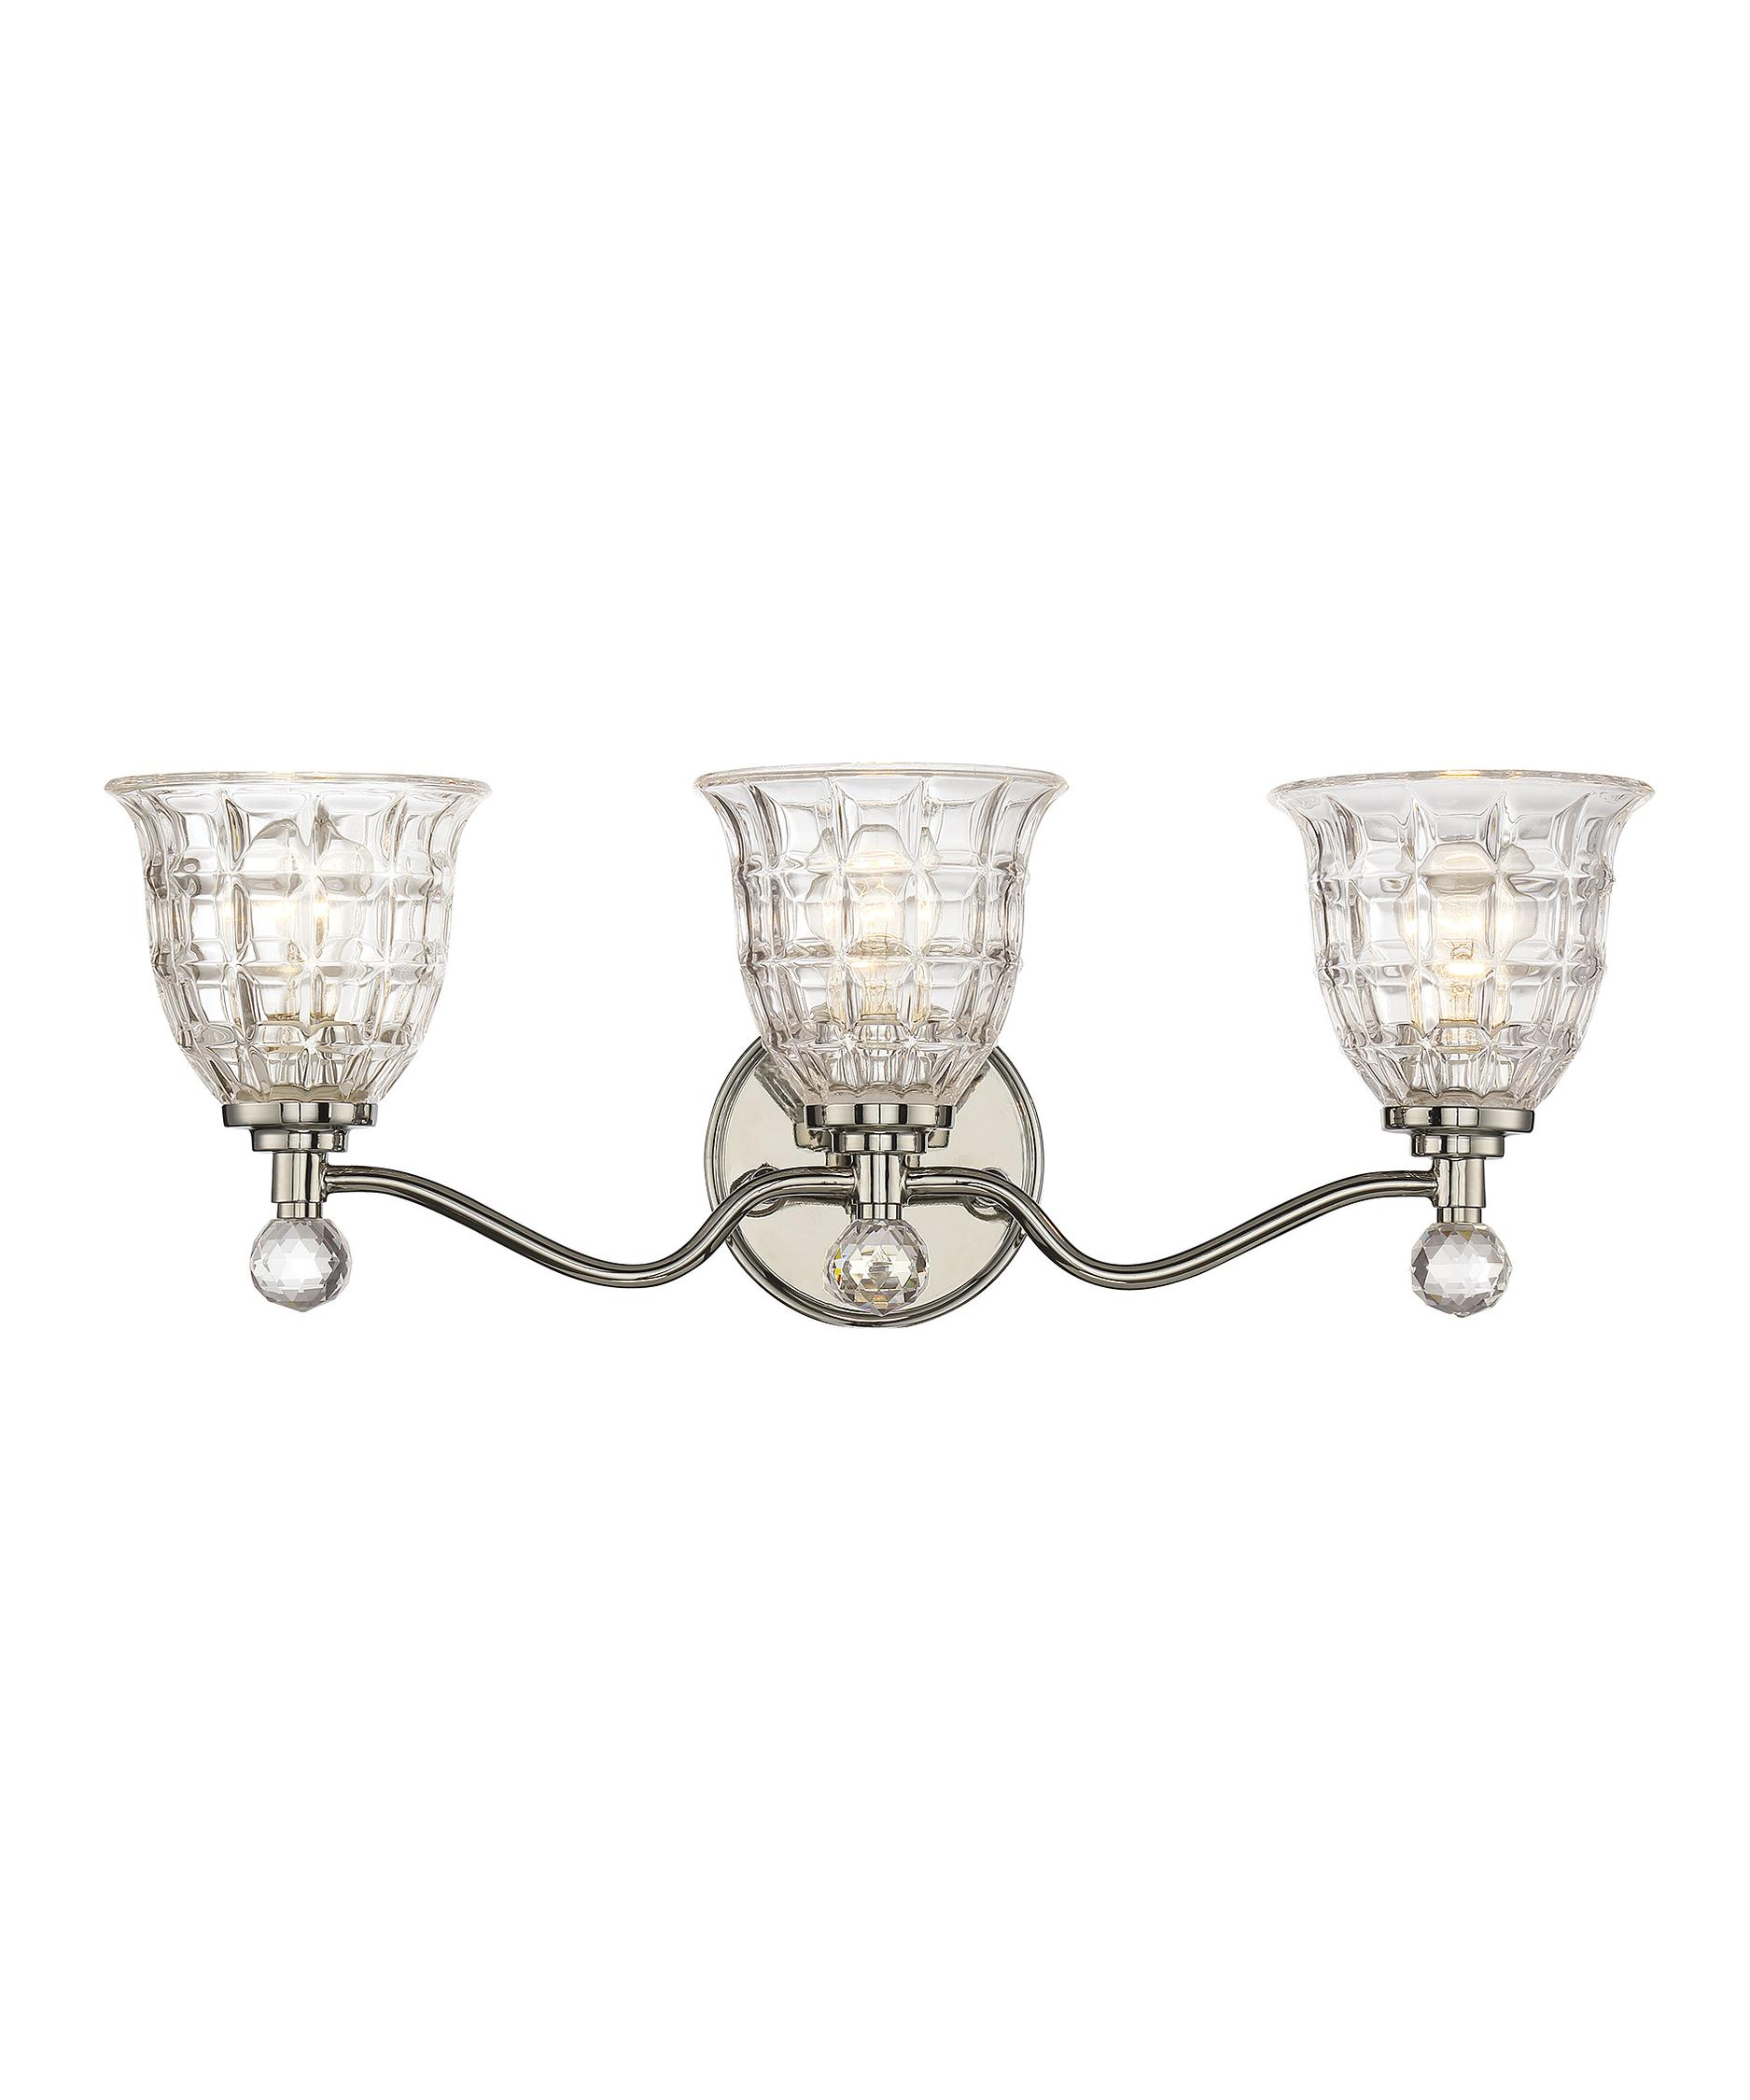 Shown In Polished Nickel Finish And Clear Crystal Glass